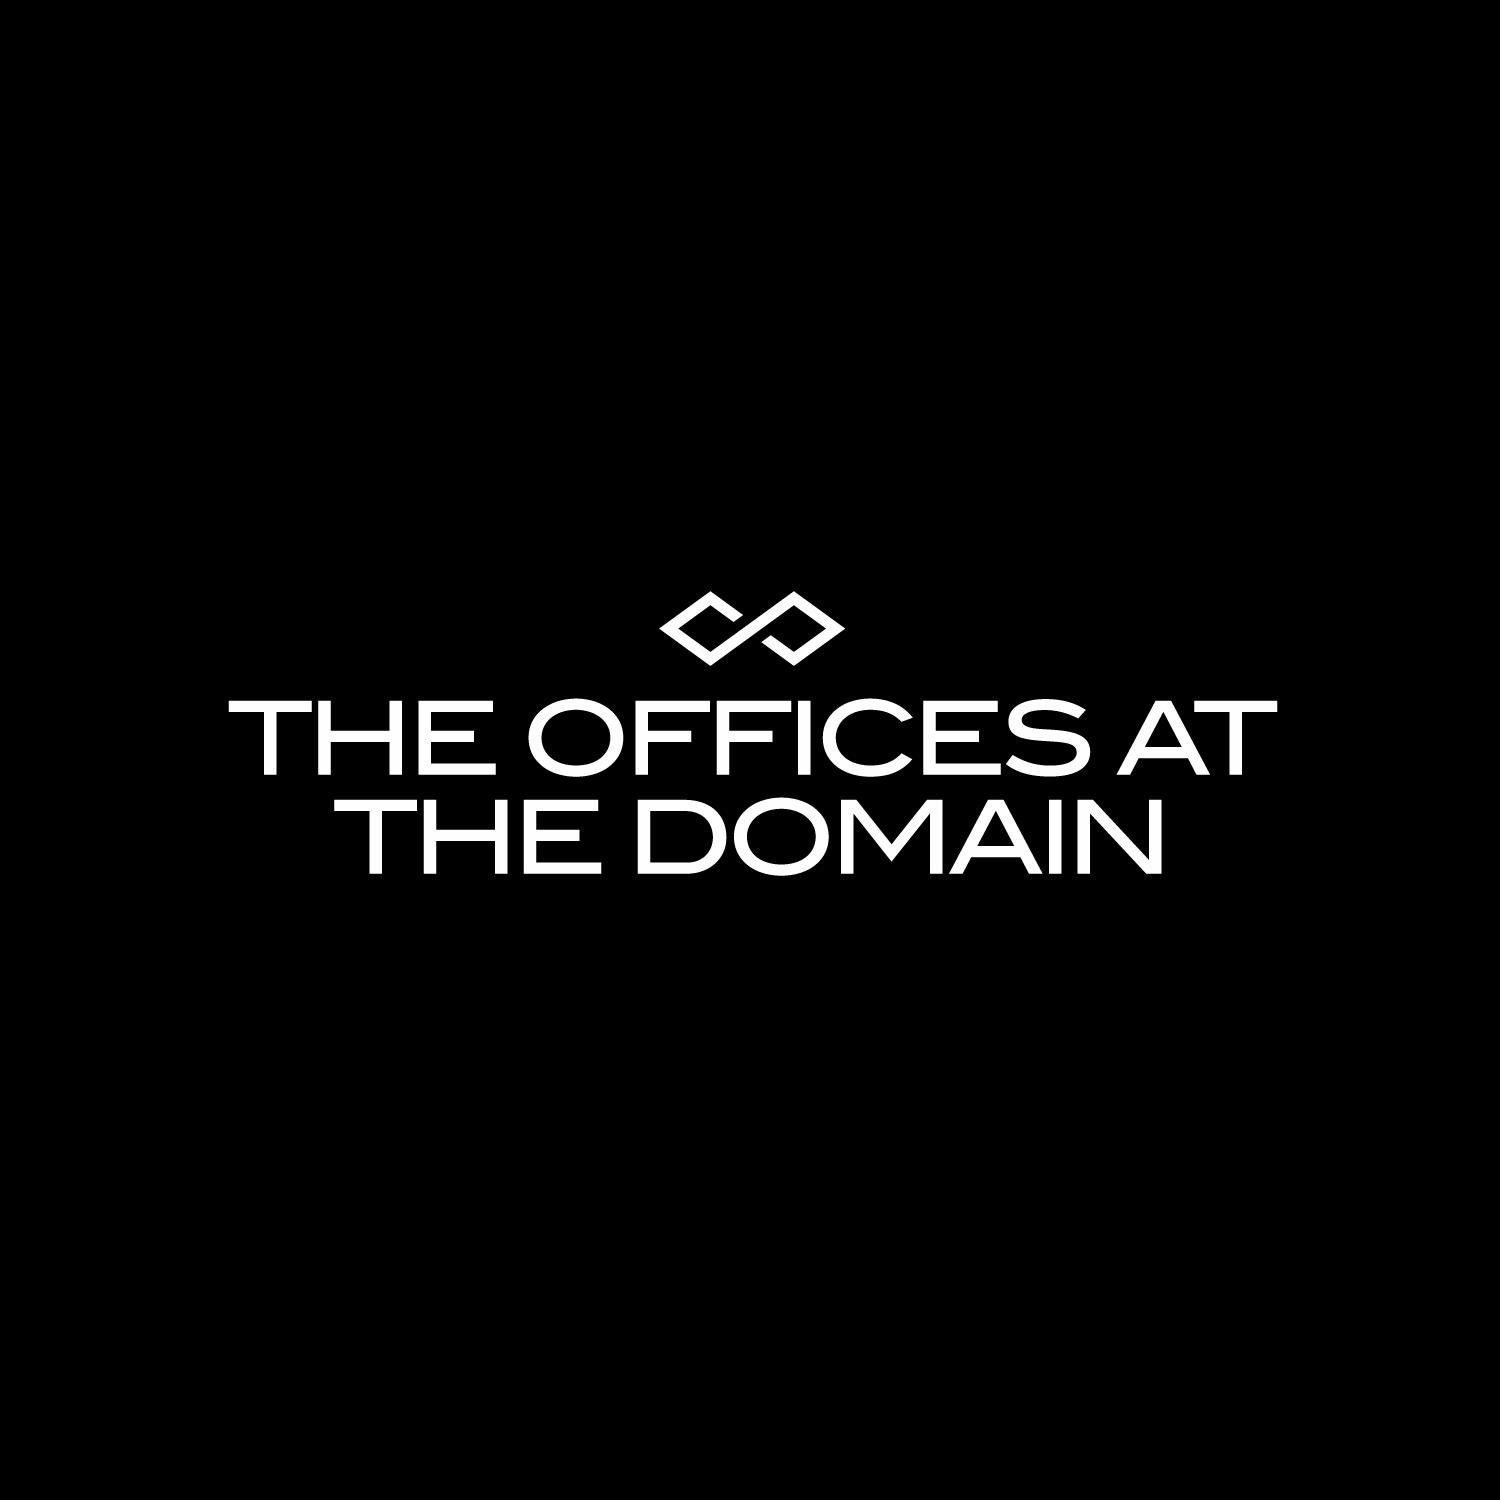 The Offices at The Domain image 6